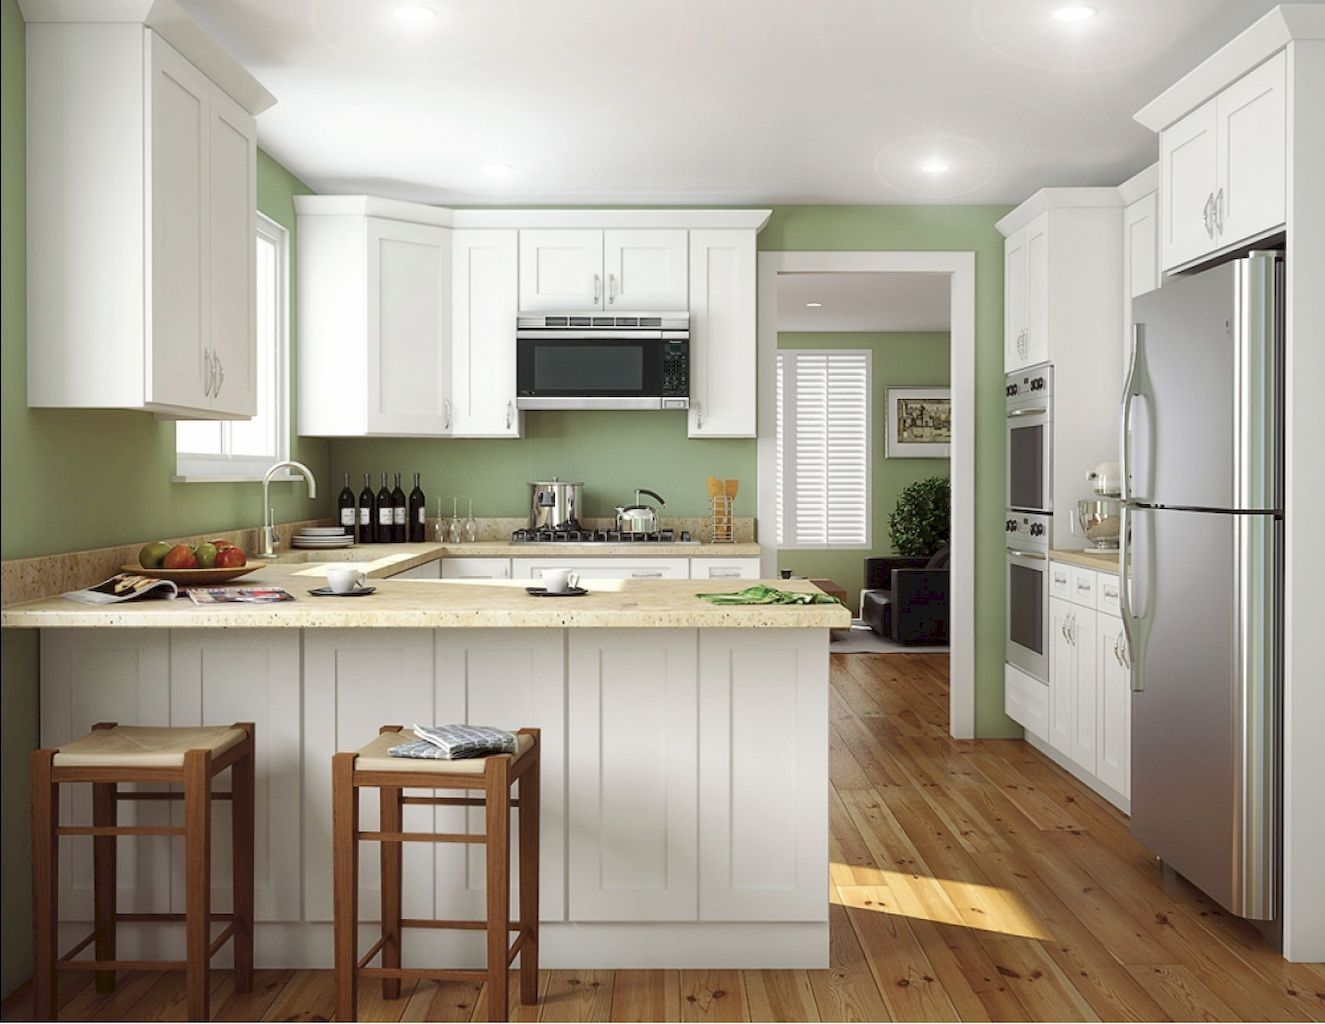 125 Stuning Kitchen Cabinets Design Ideas And Remodel To Inspire Your Kitchen Kitchend White Shaker Kitchen Kitchen Cabinet Styles Assembled Kitchen Cabinets